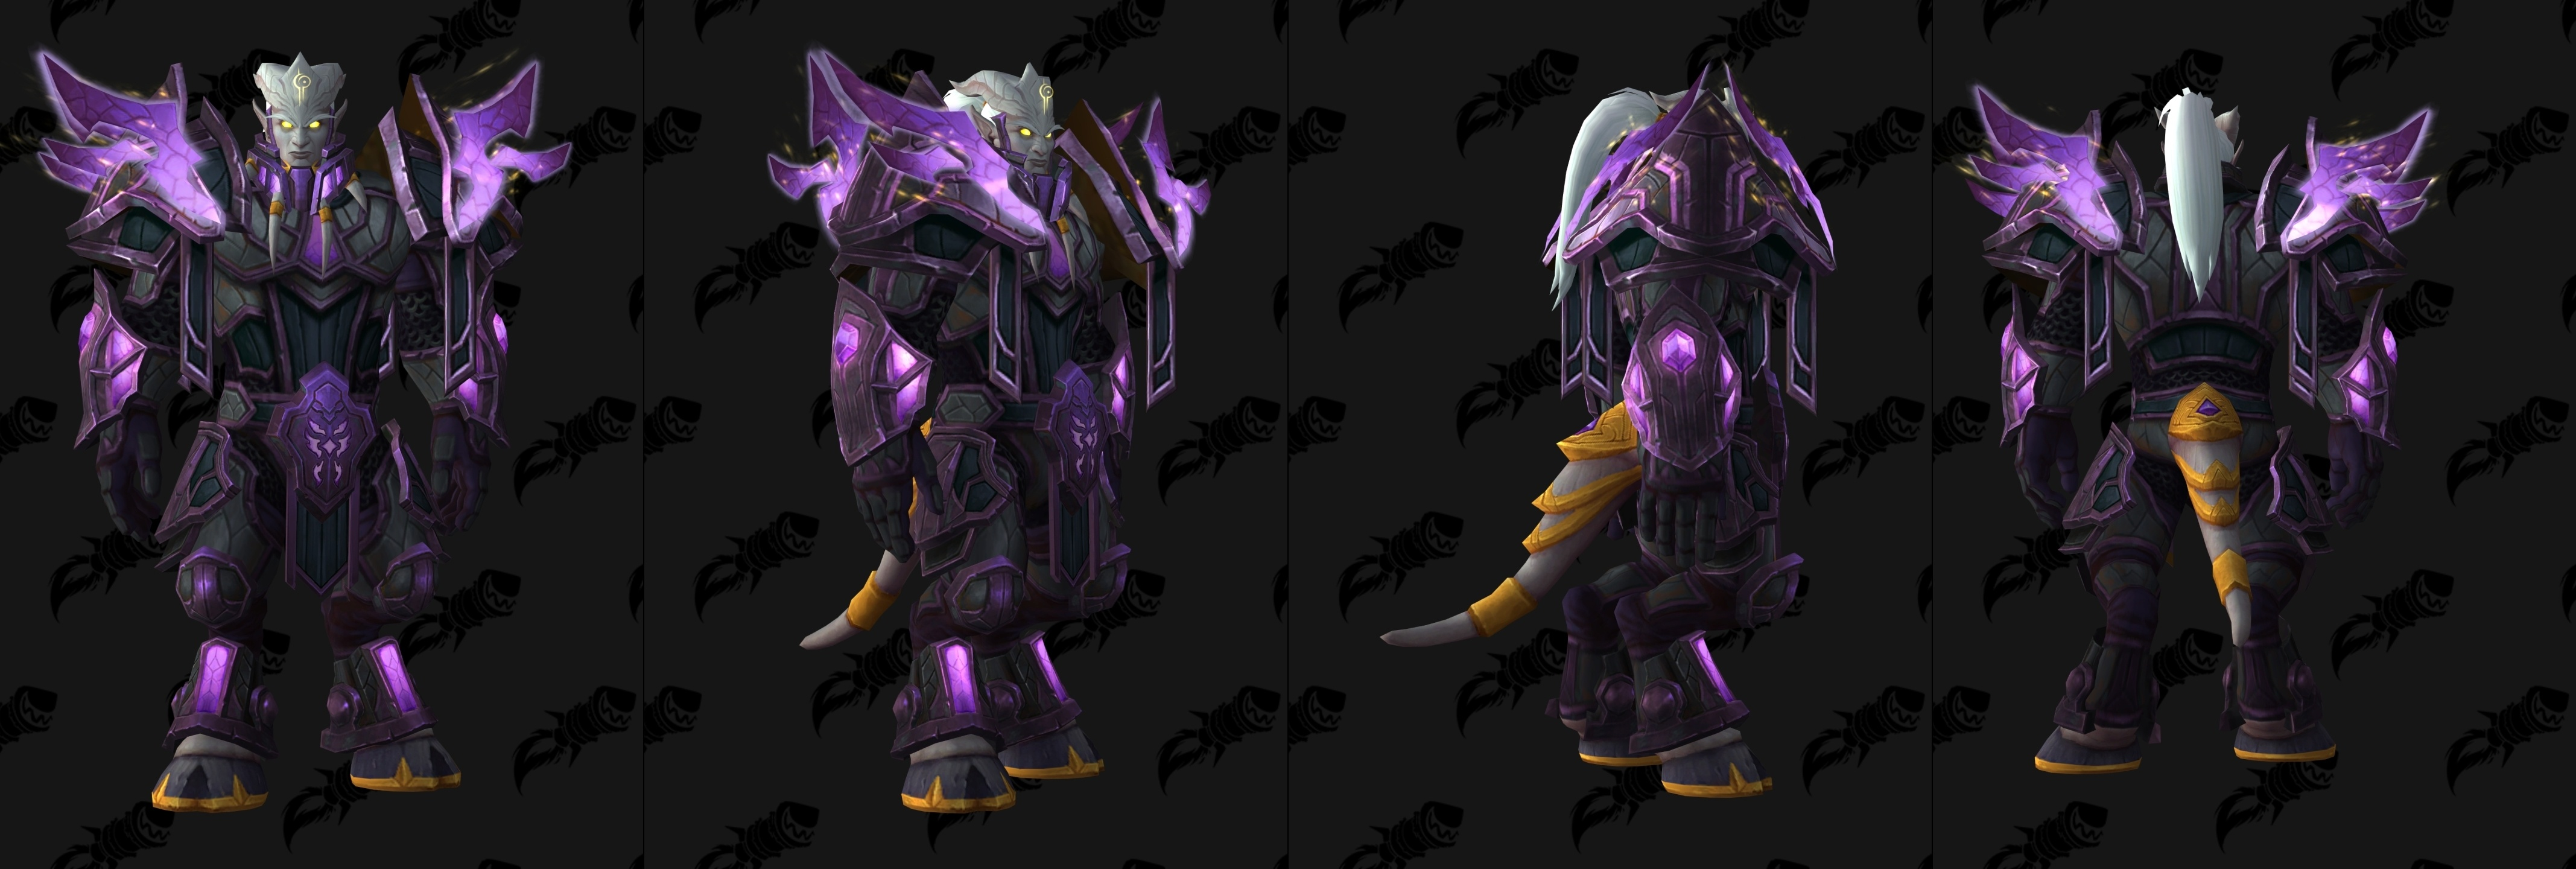 7 3 5 Ptr Heritage Armor Set Models Wowhead News In order to get the set, you need to be exalted with the blood elves and your character must be at max level. 7 3 5 ptr heritage armor set models